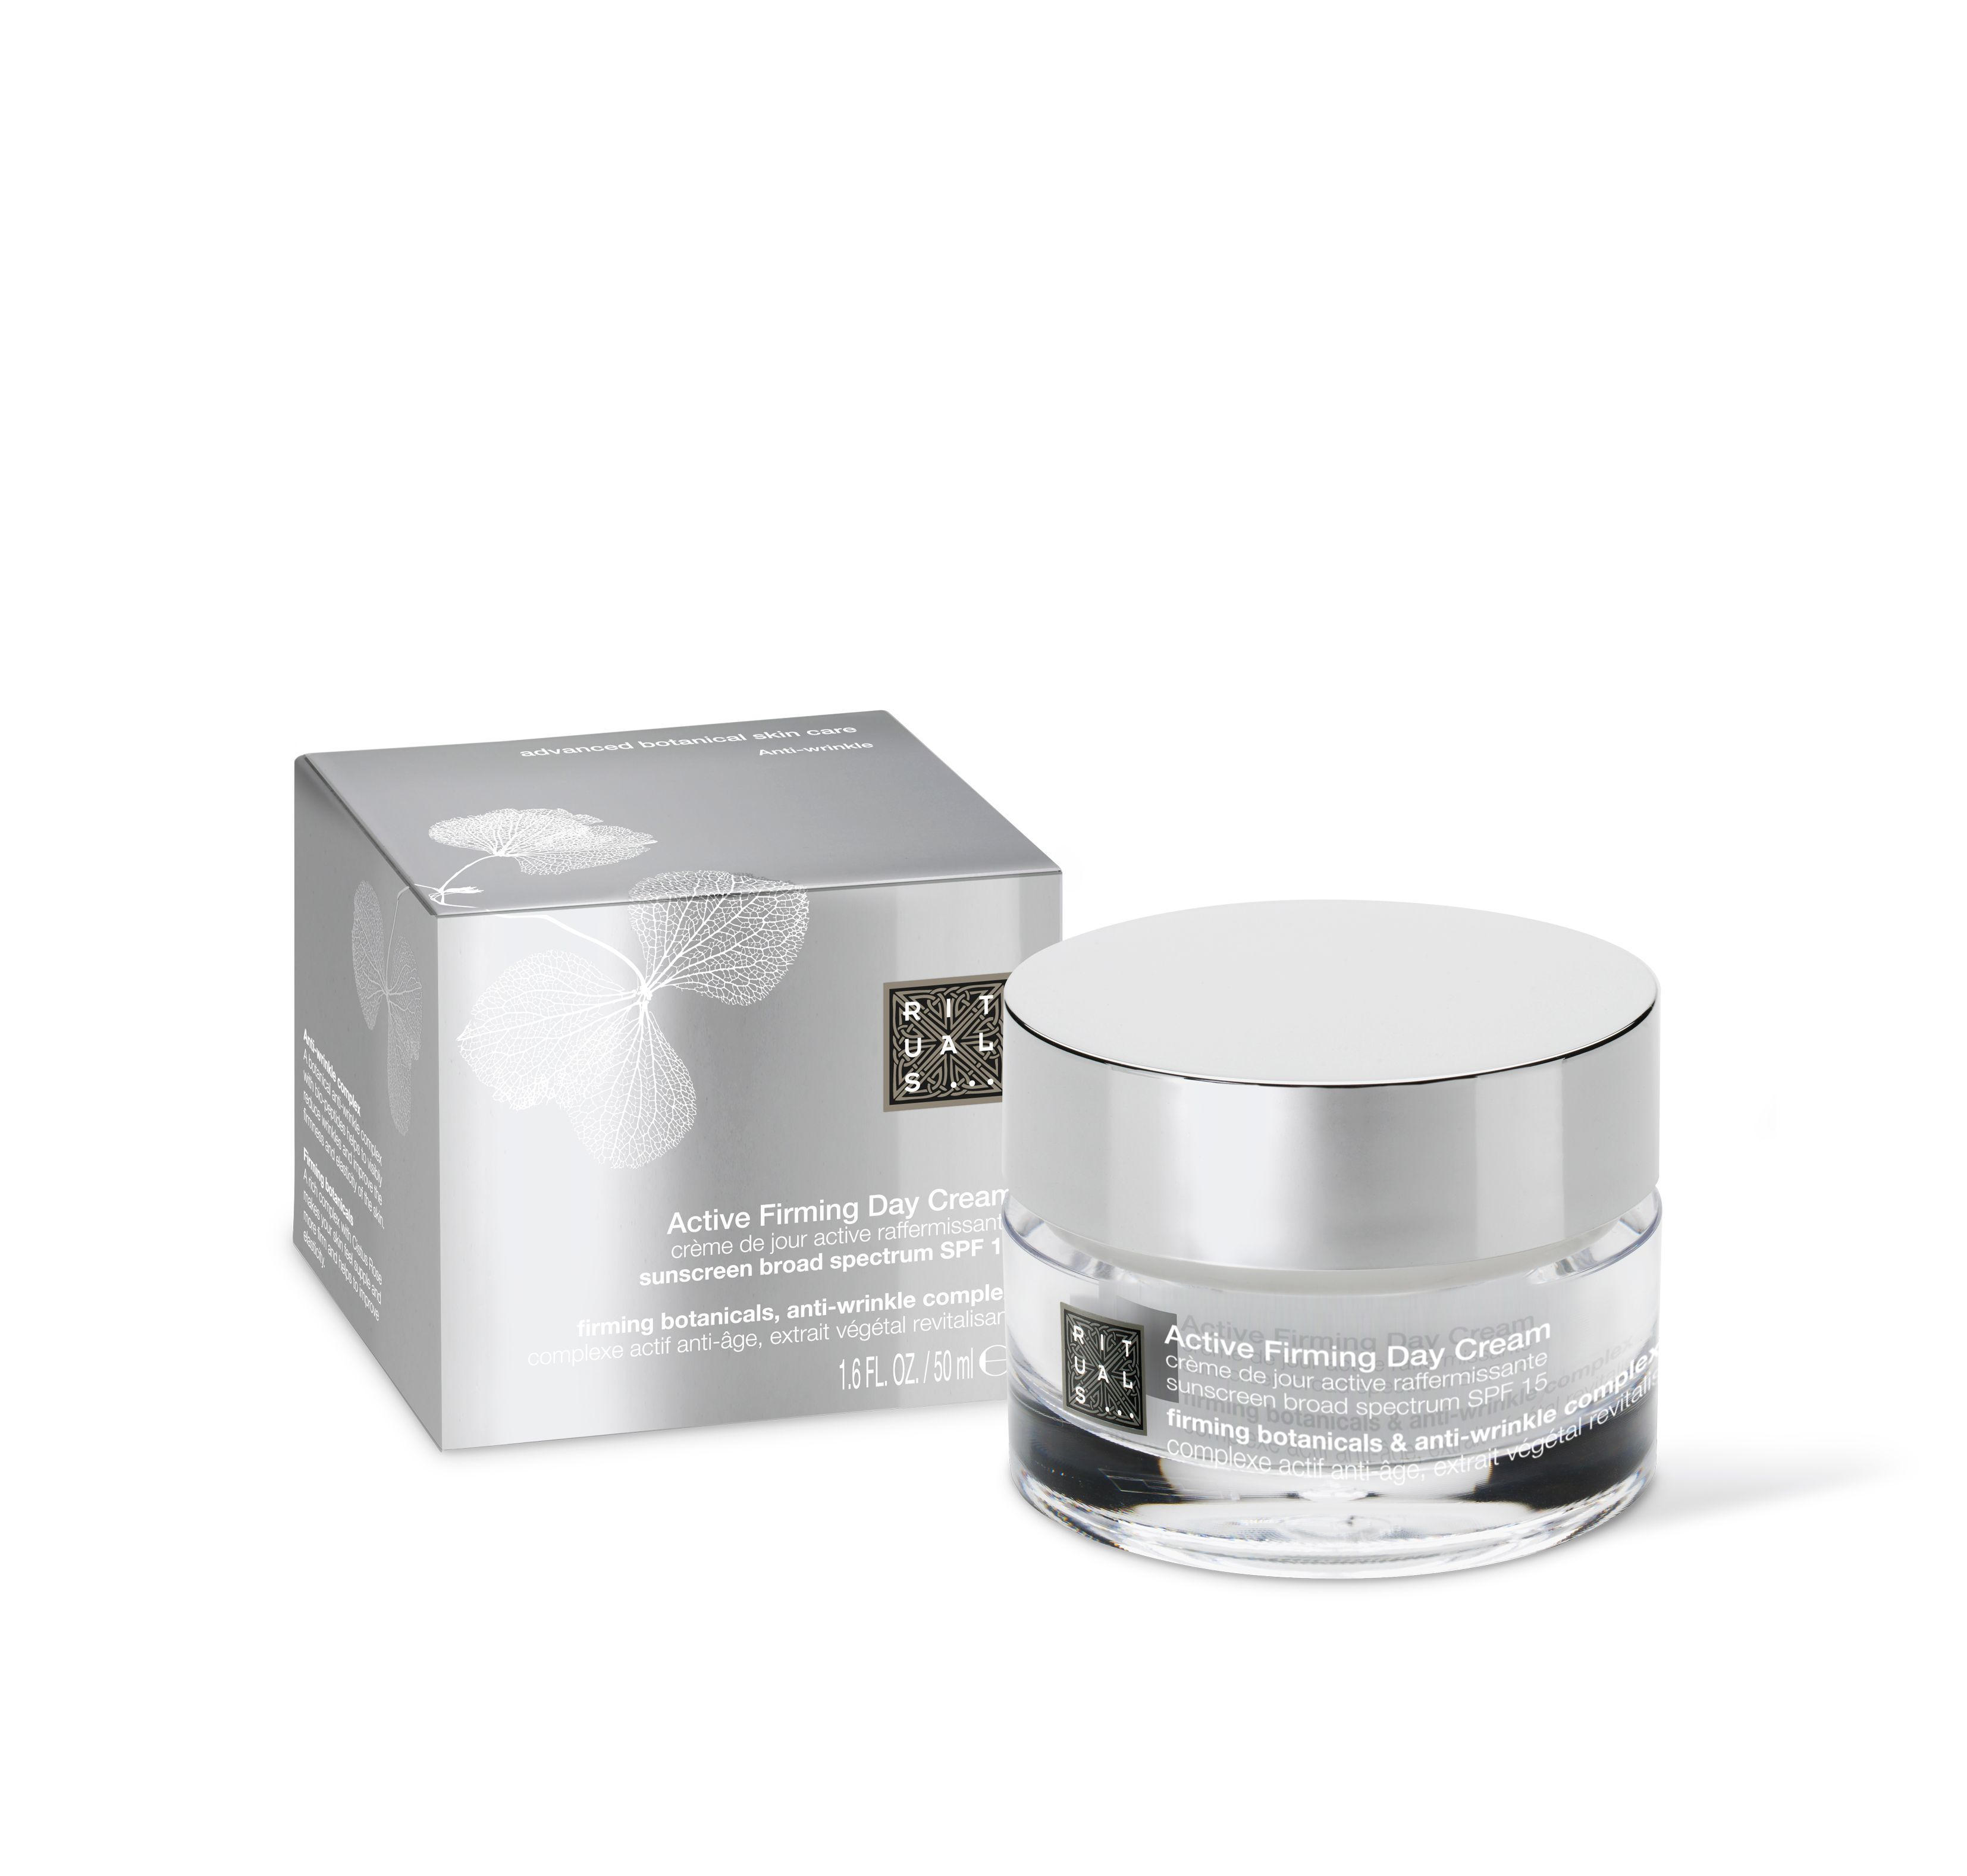 Active Firming Day Cream SPF 15